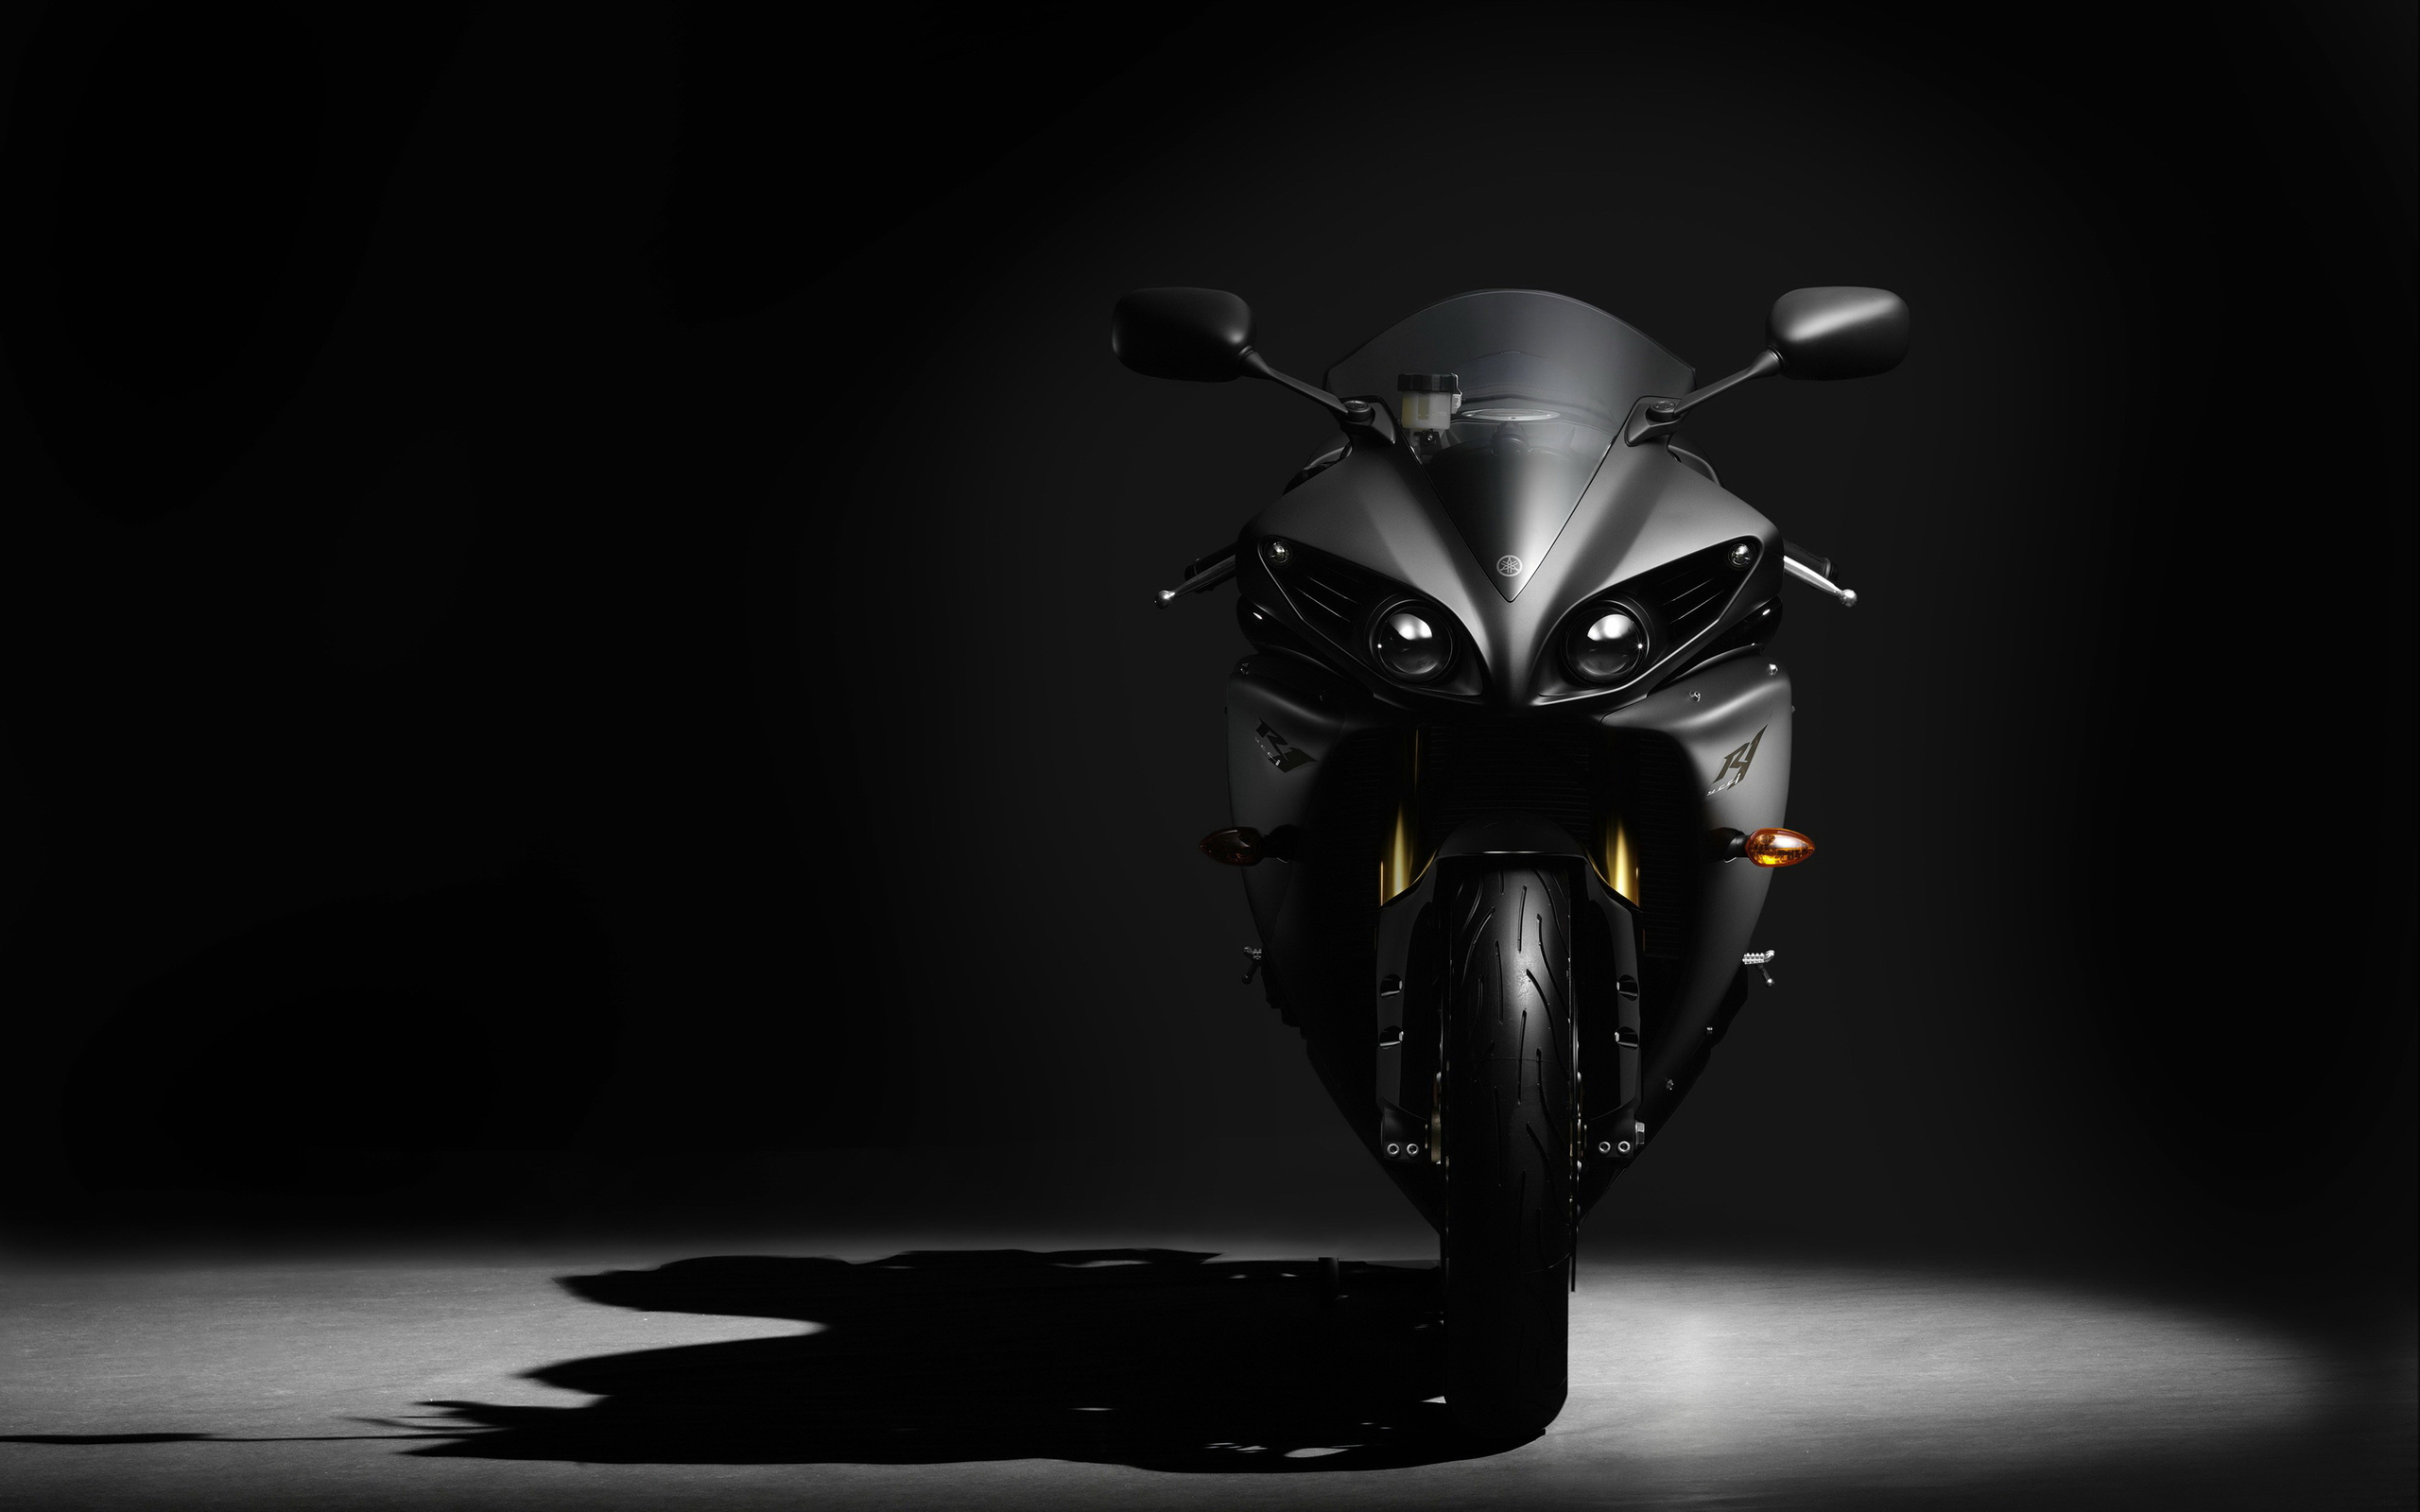 2012 Yamaha YZF R1 Wallpapers HD Wallpapers 2560x1600